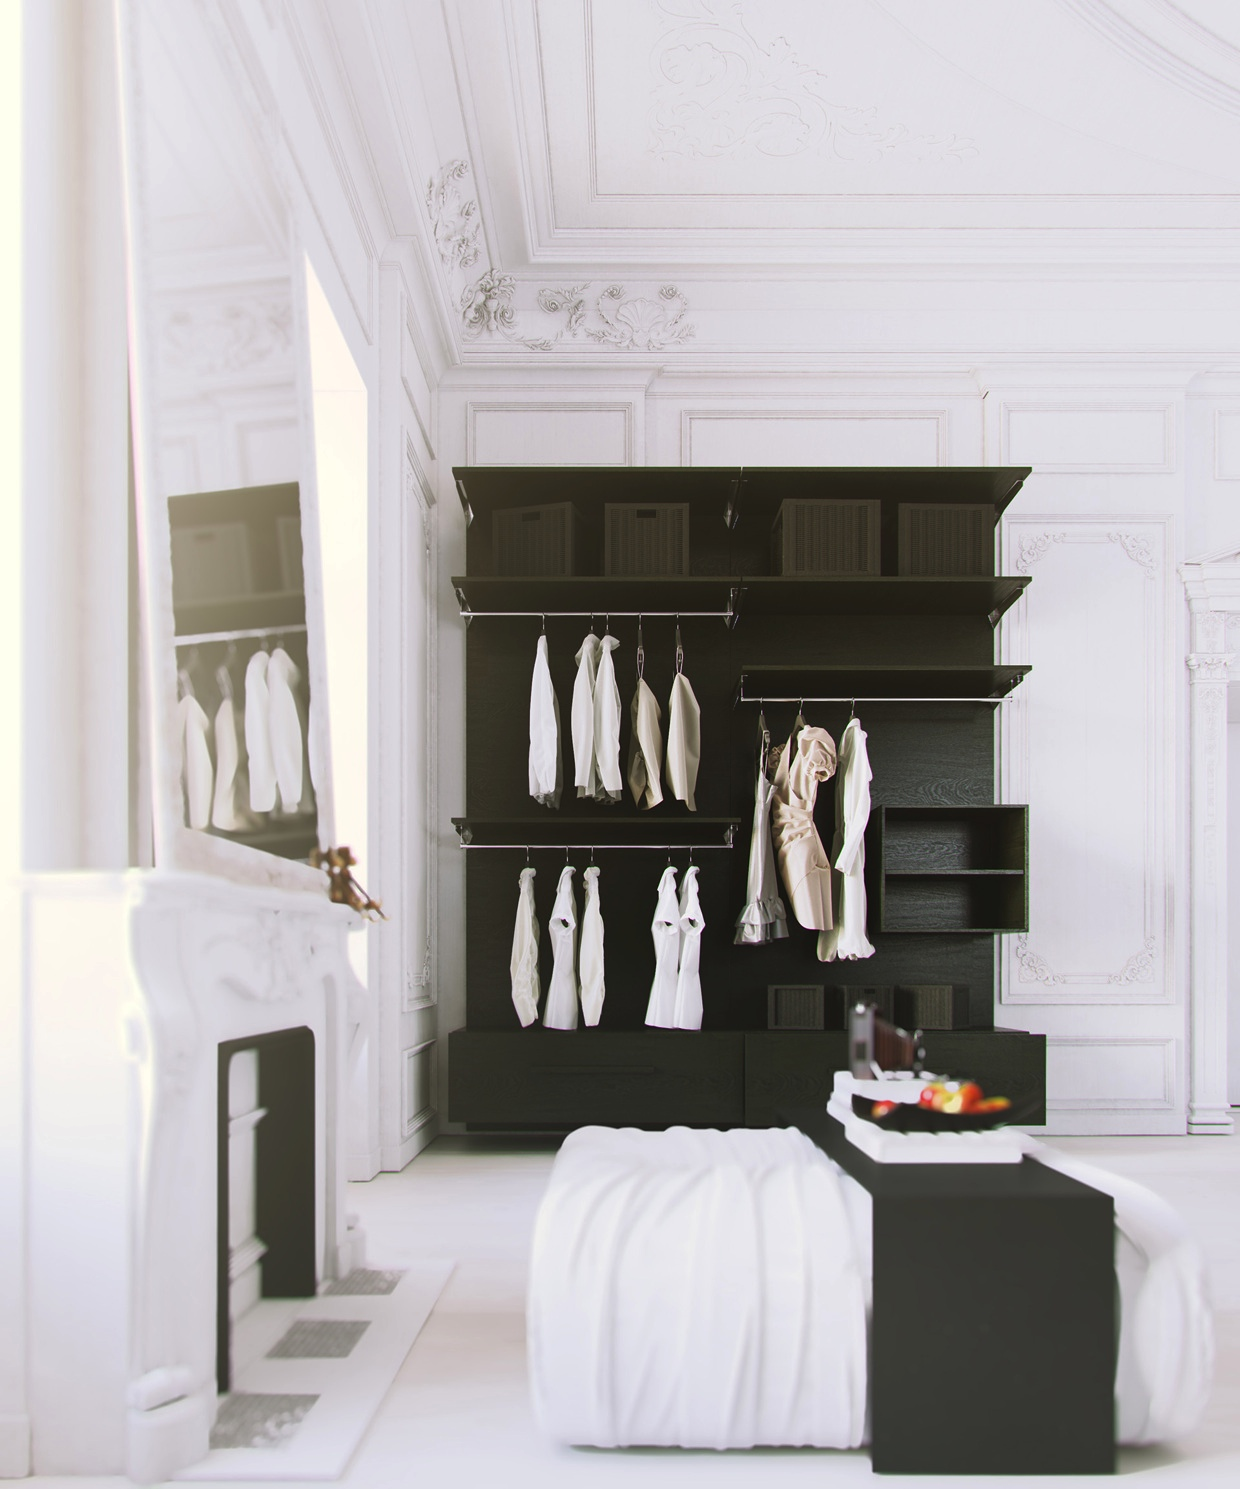 Bedroom Clothes Storage Parisian Apartment- White Bedroom With Black Clothes